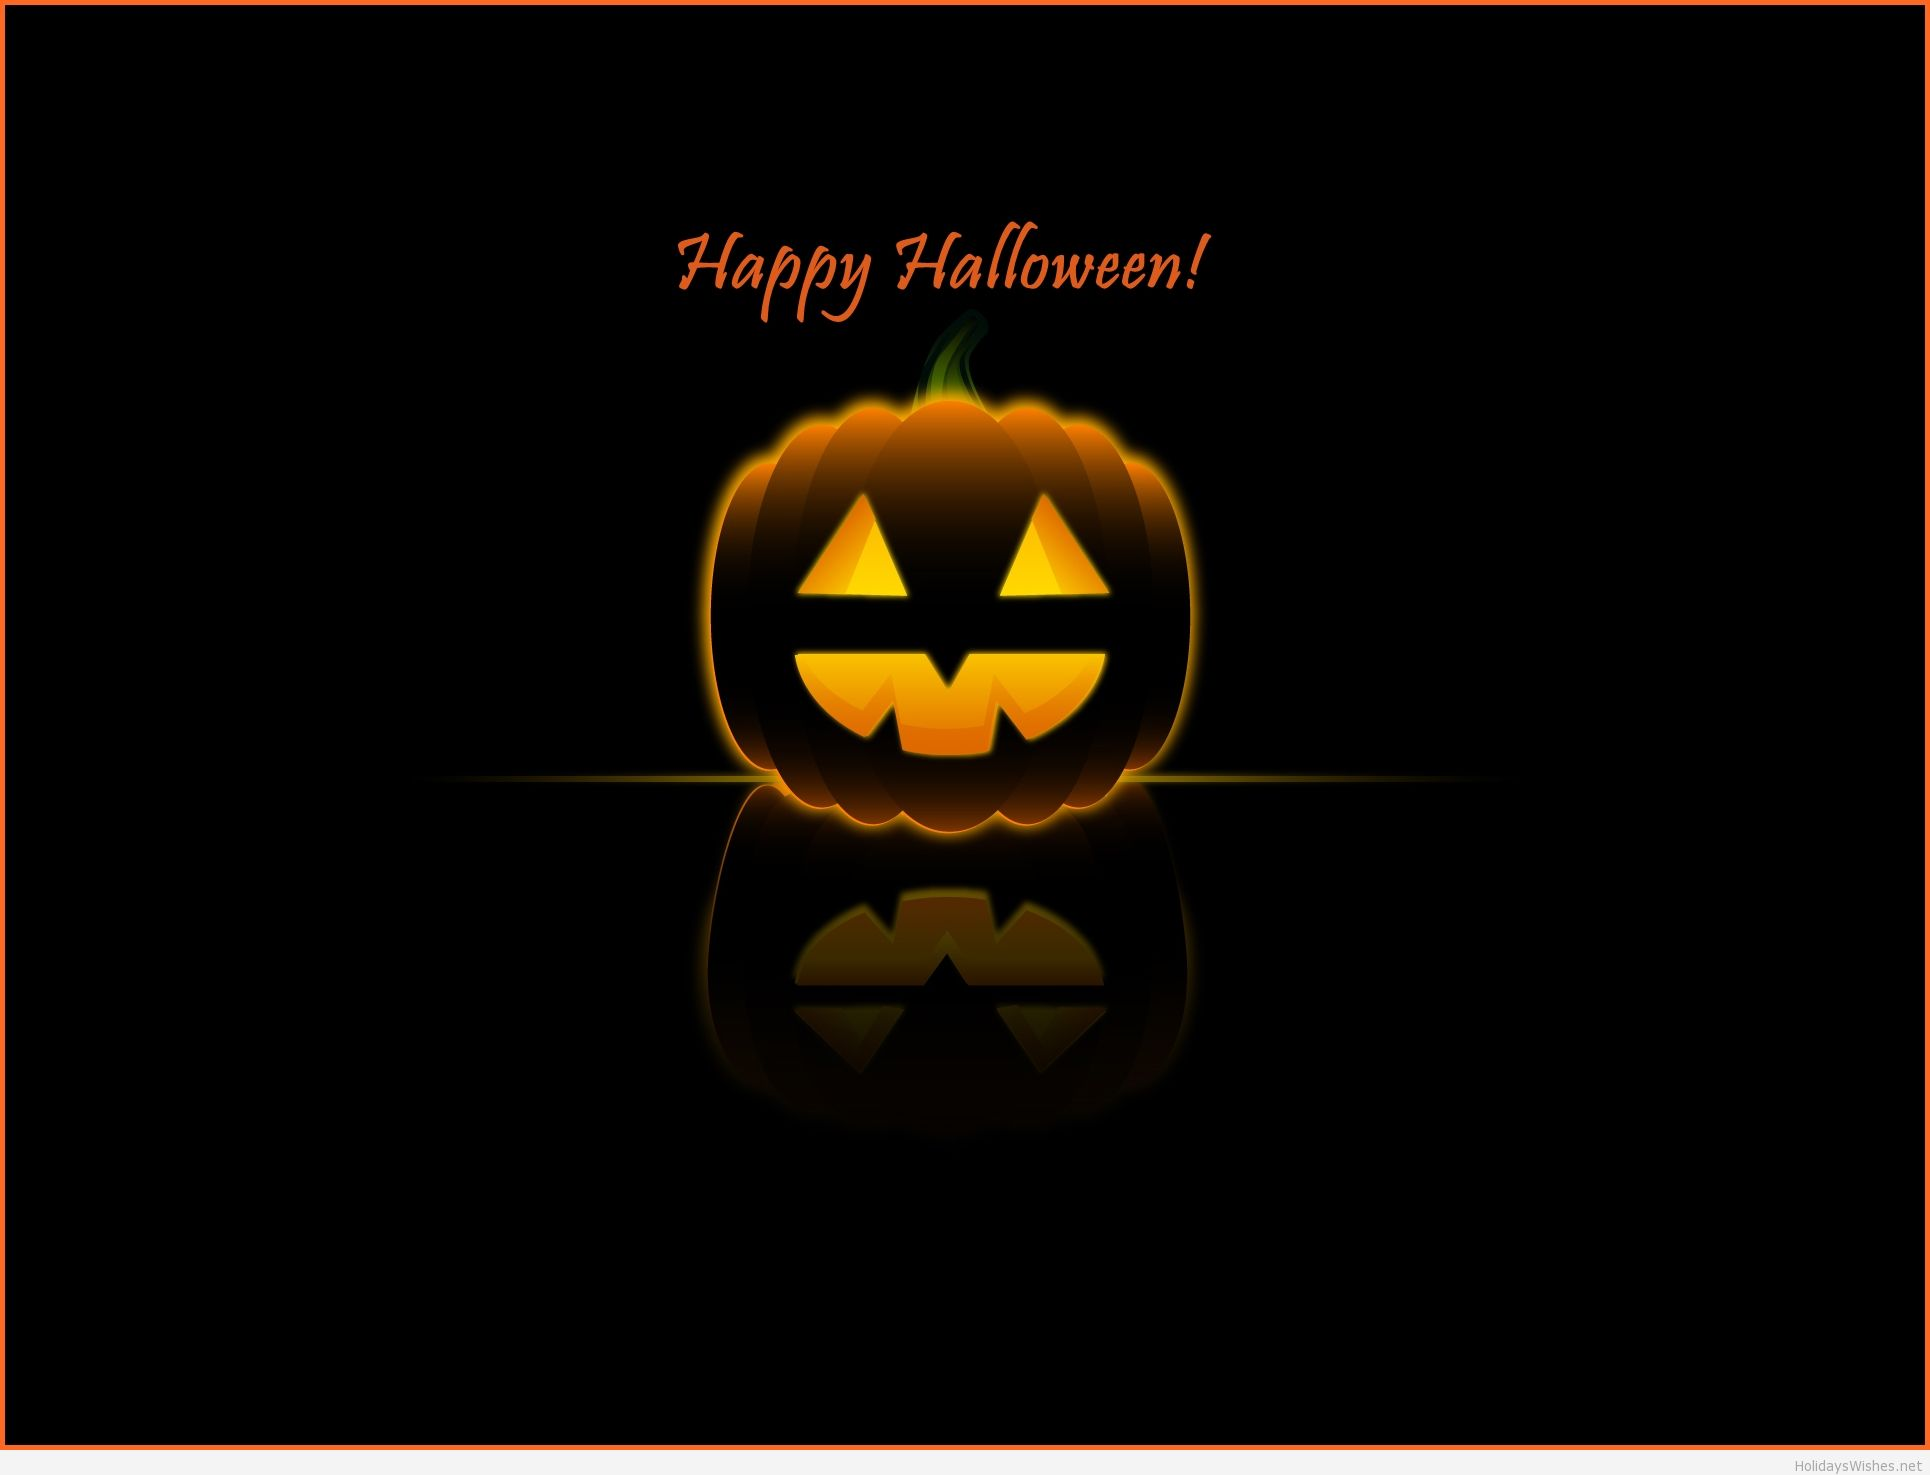 Happy-Halloween-Pumpkin-wallpaper